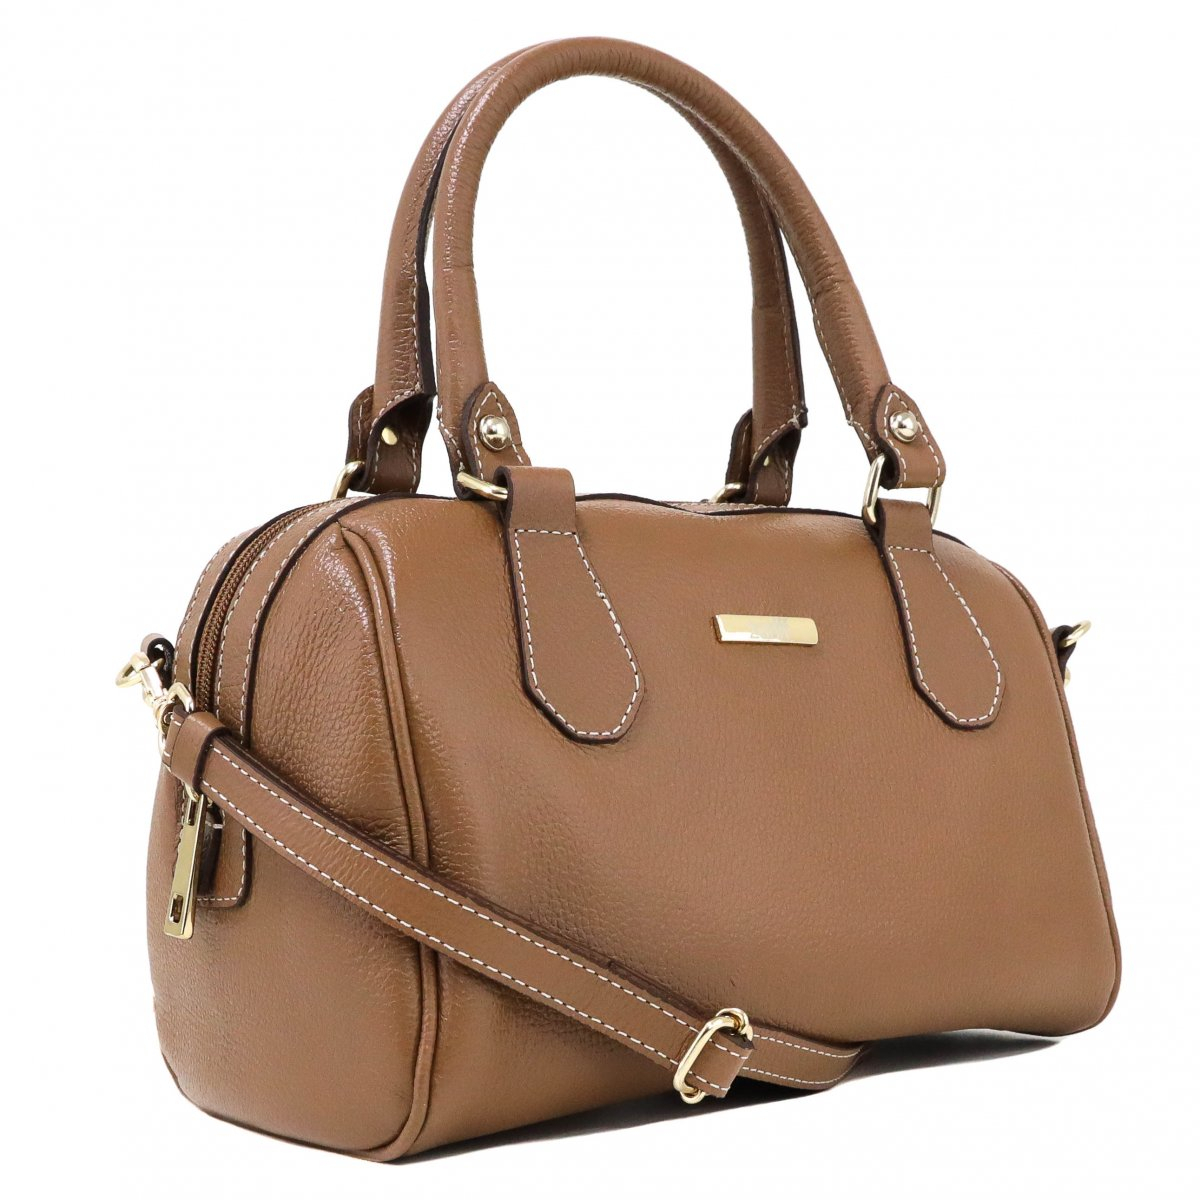 Bolsa Zariff Shoes Satchel Marrom